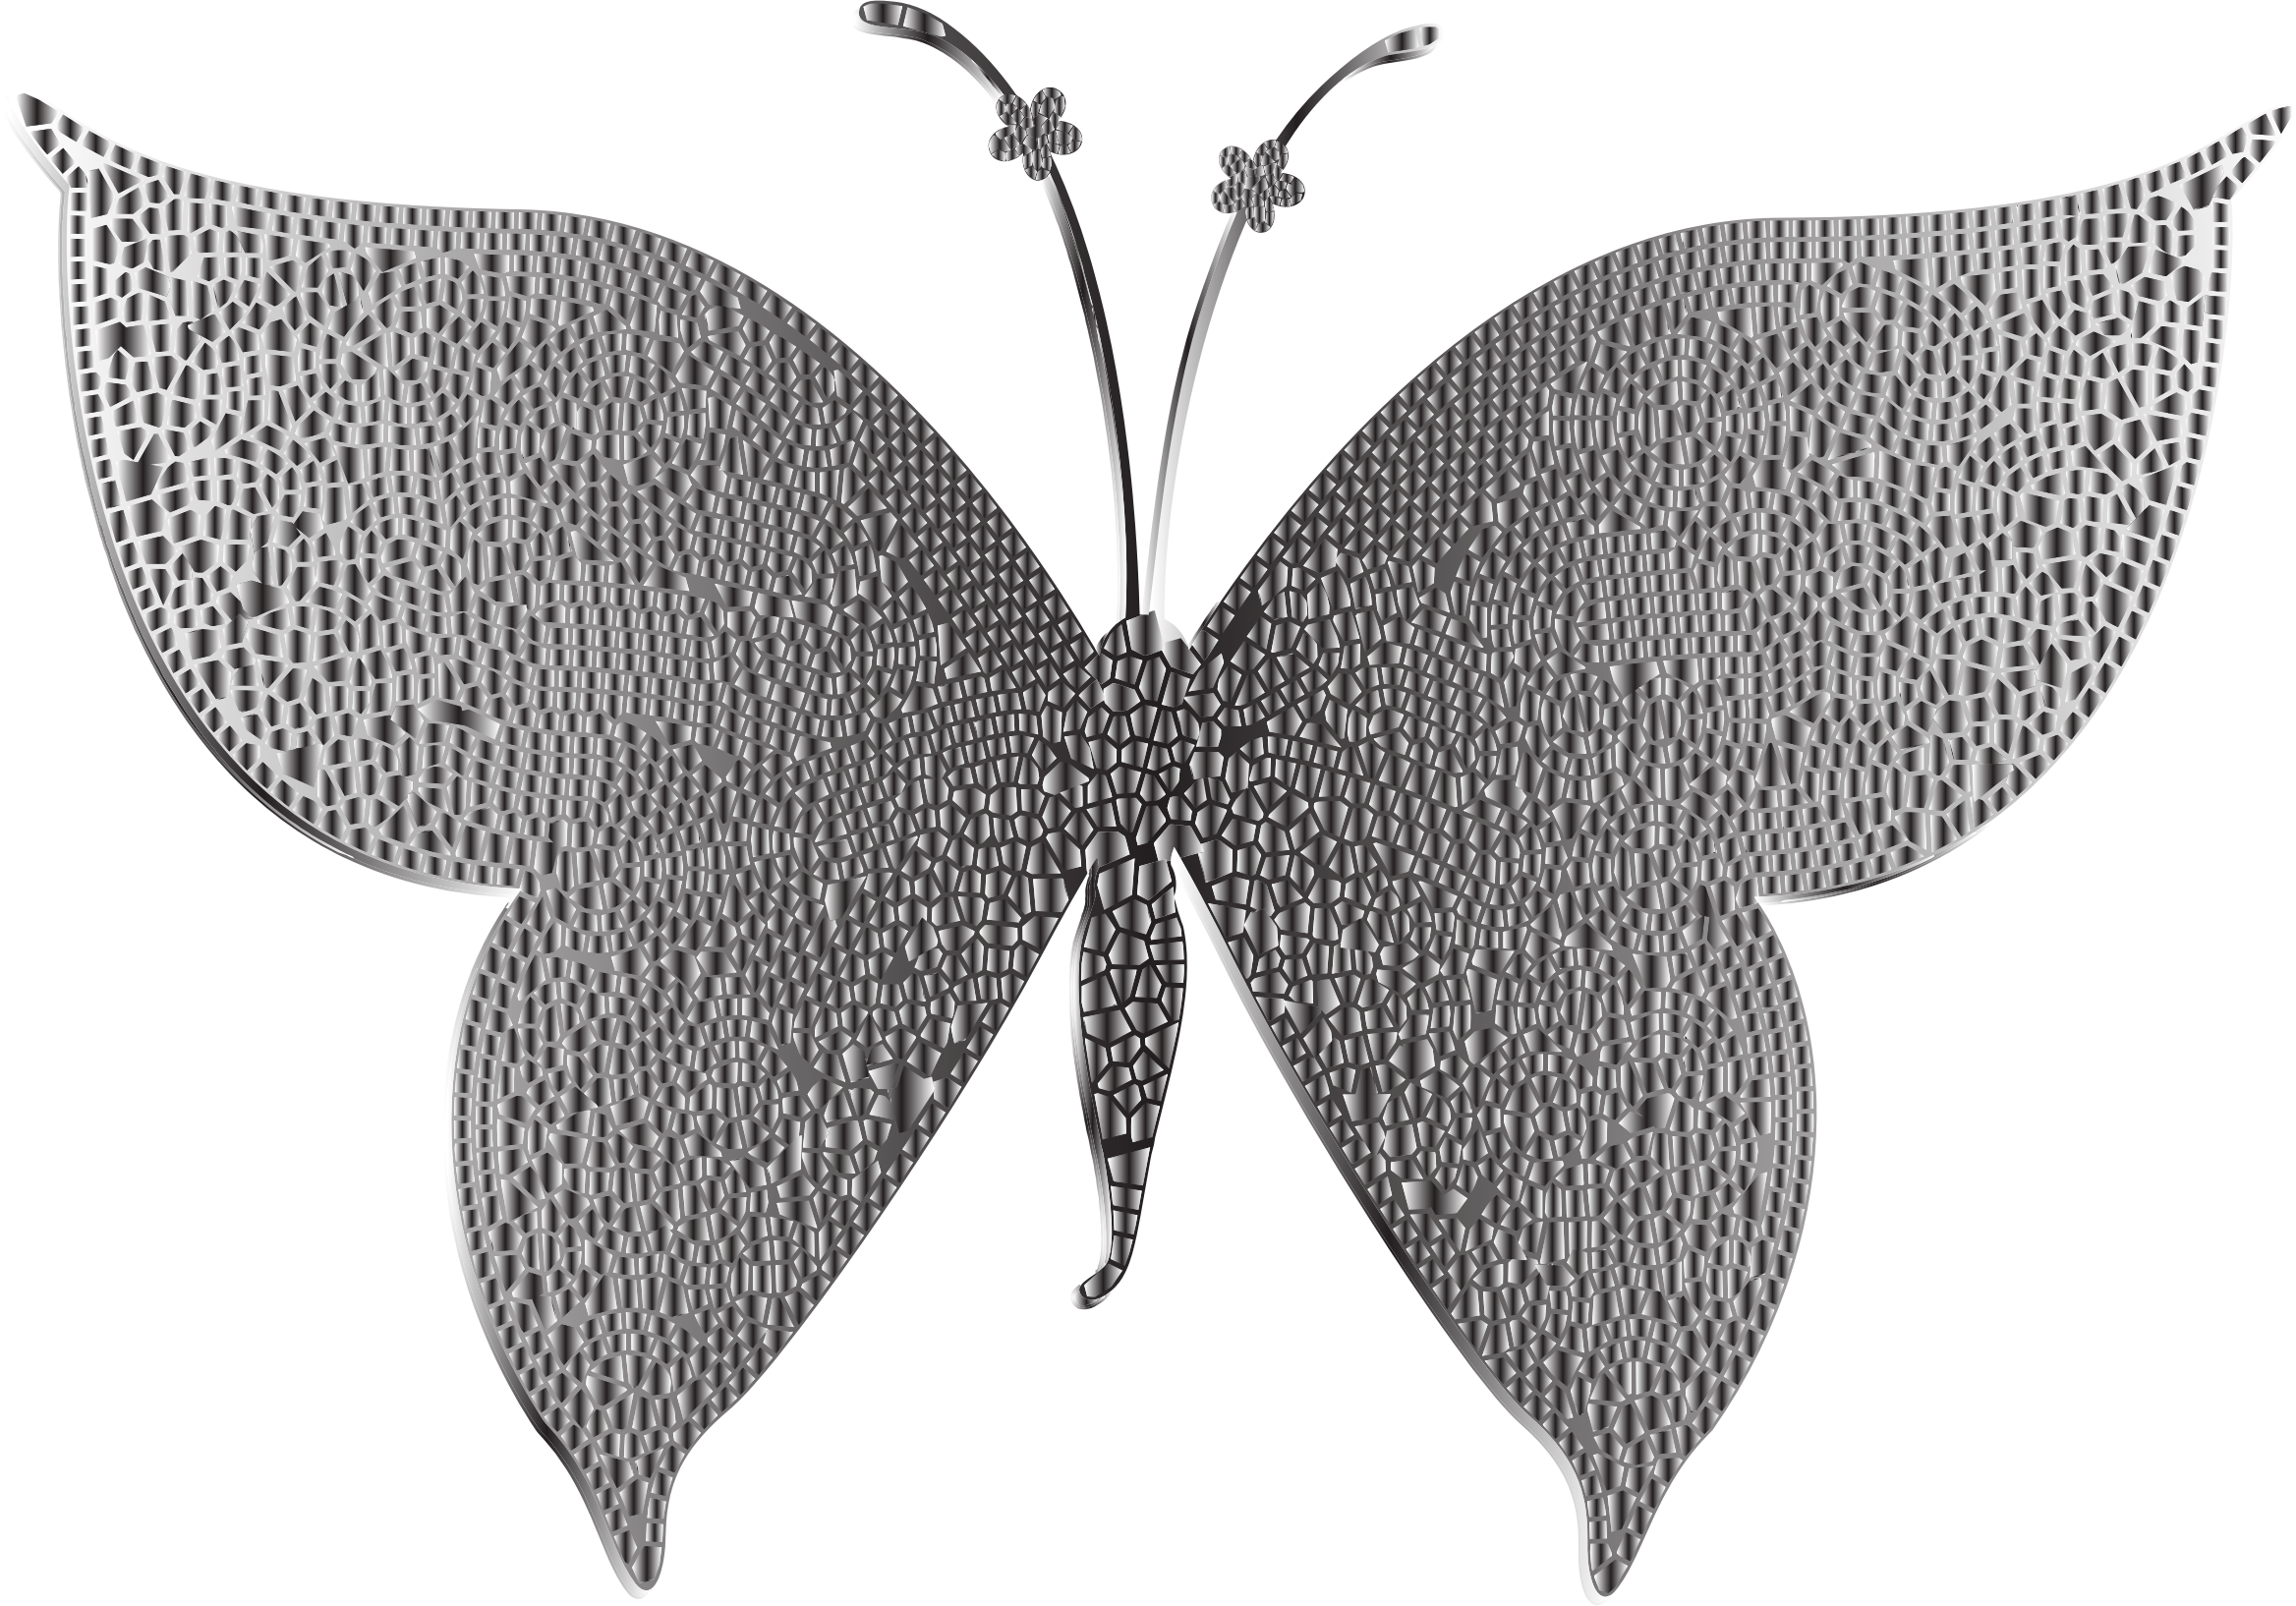 Monochromatic Tiled Butterfly 2 by GDJ